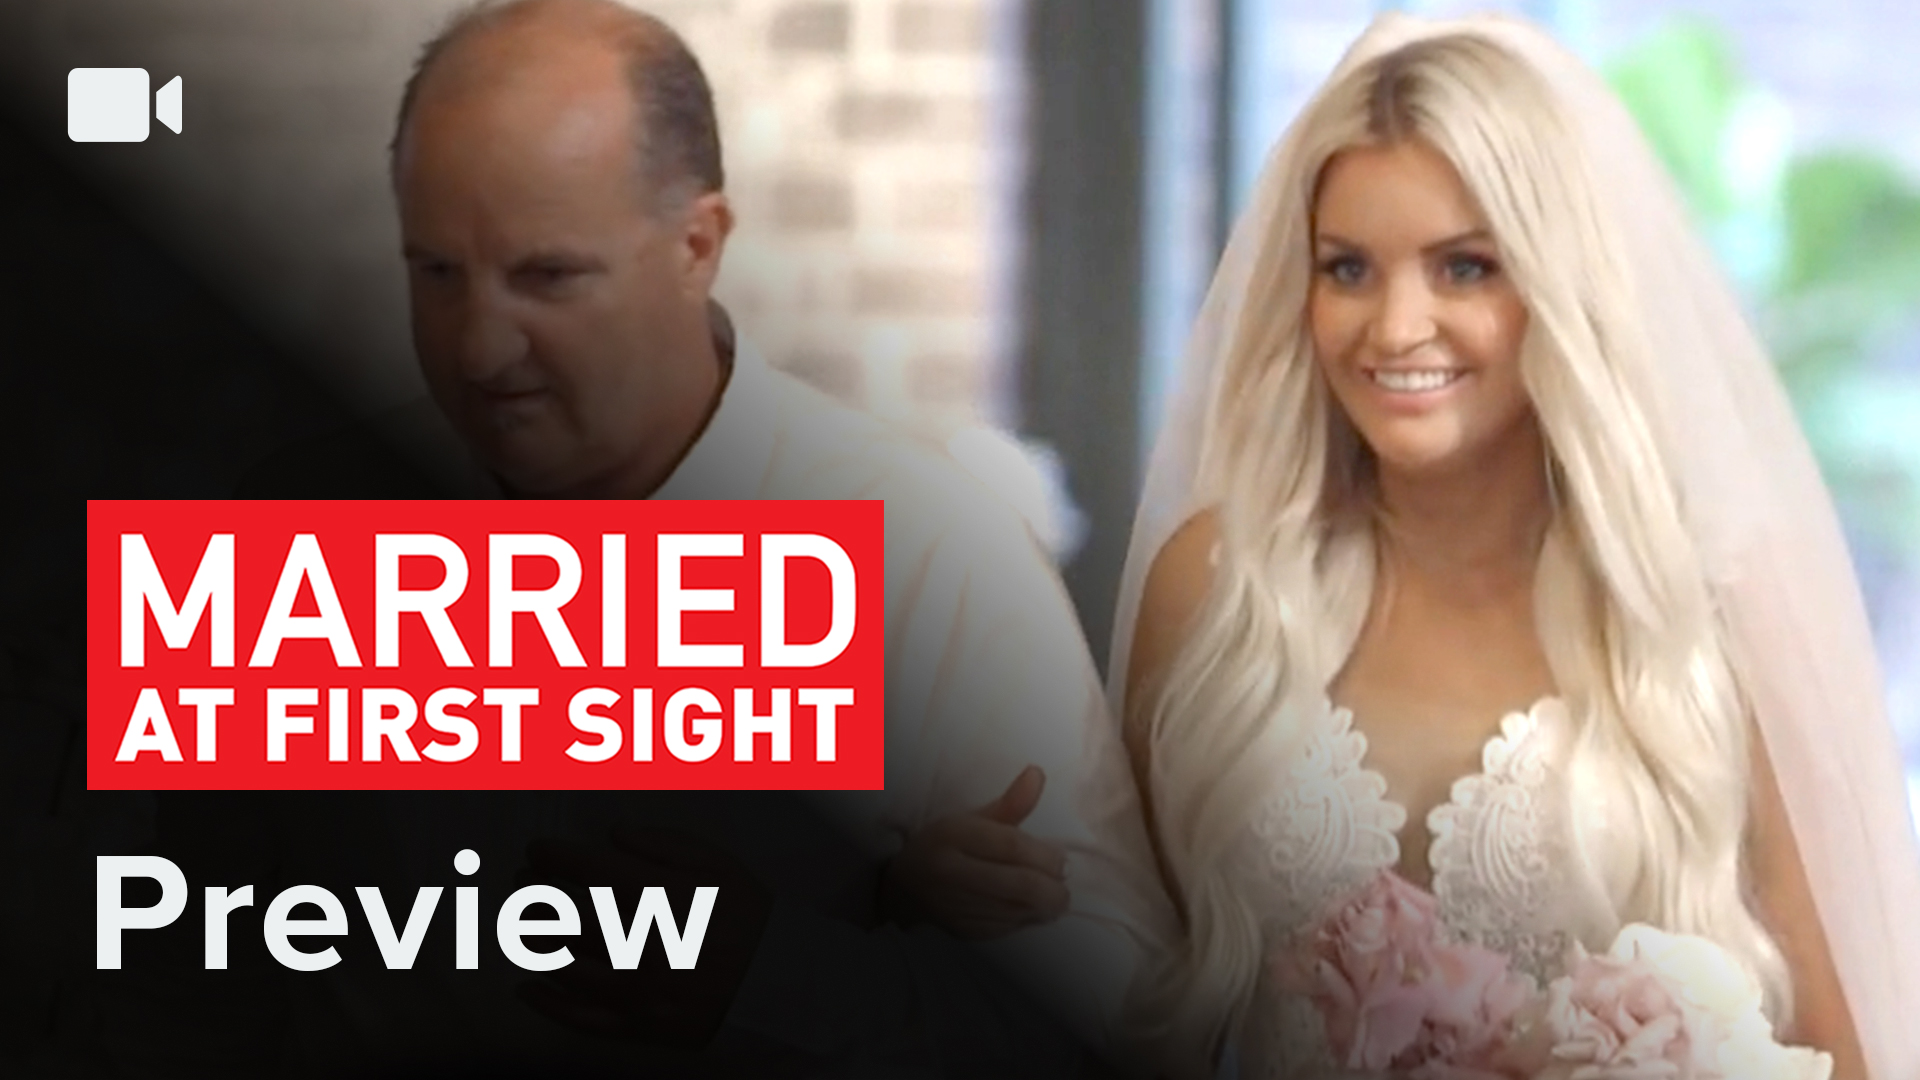 PREVIEW: Married At First Sight 2021